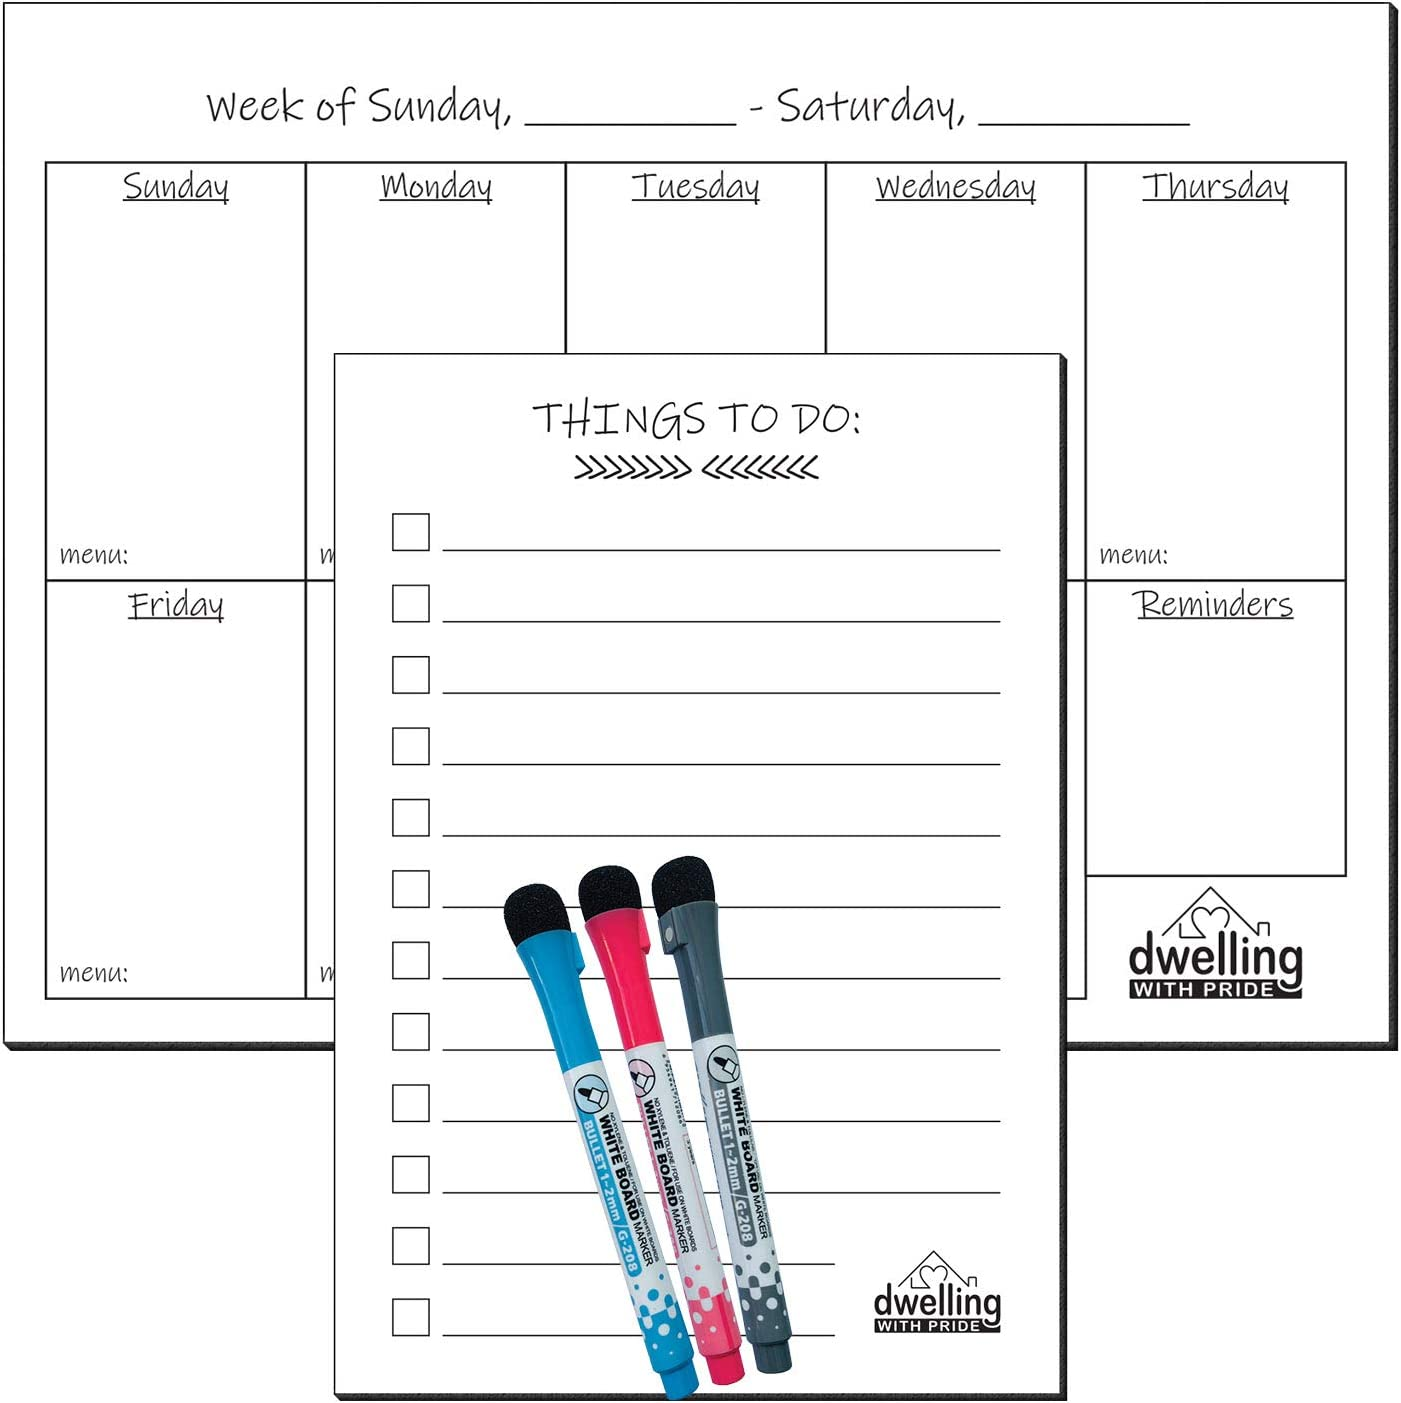 Magnetic Whiteboard for Refrigerator - Magnetic Dry Erase Board - Fridge Magnet Whiteboard - with 3 Magnetic Pens and to-Do List (White, Weekly Planner)